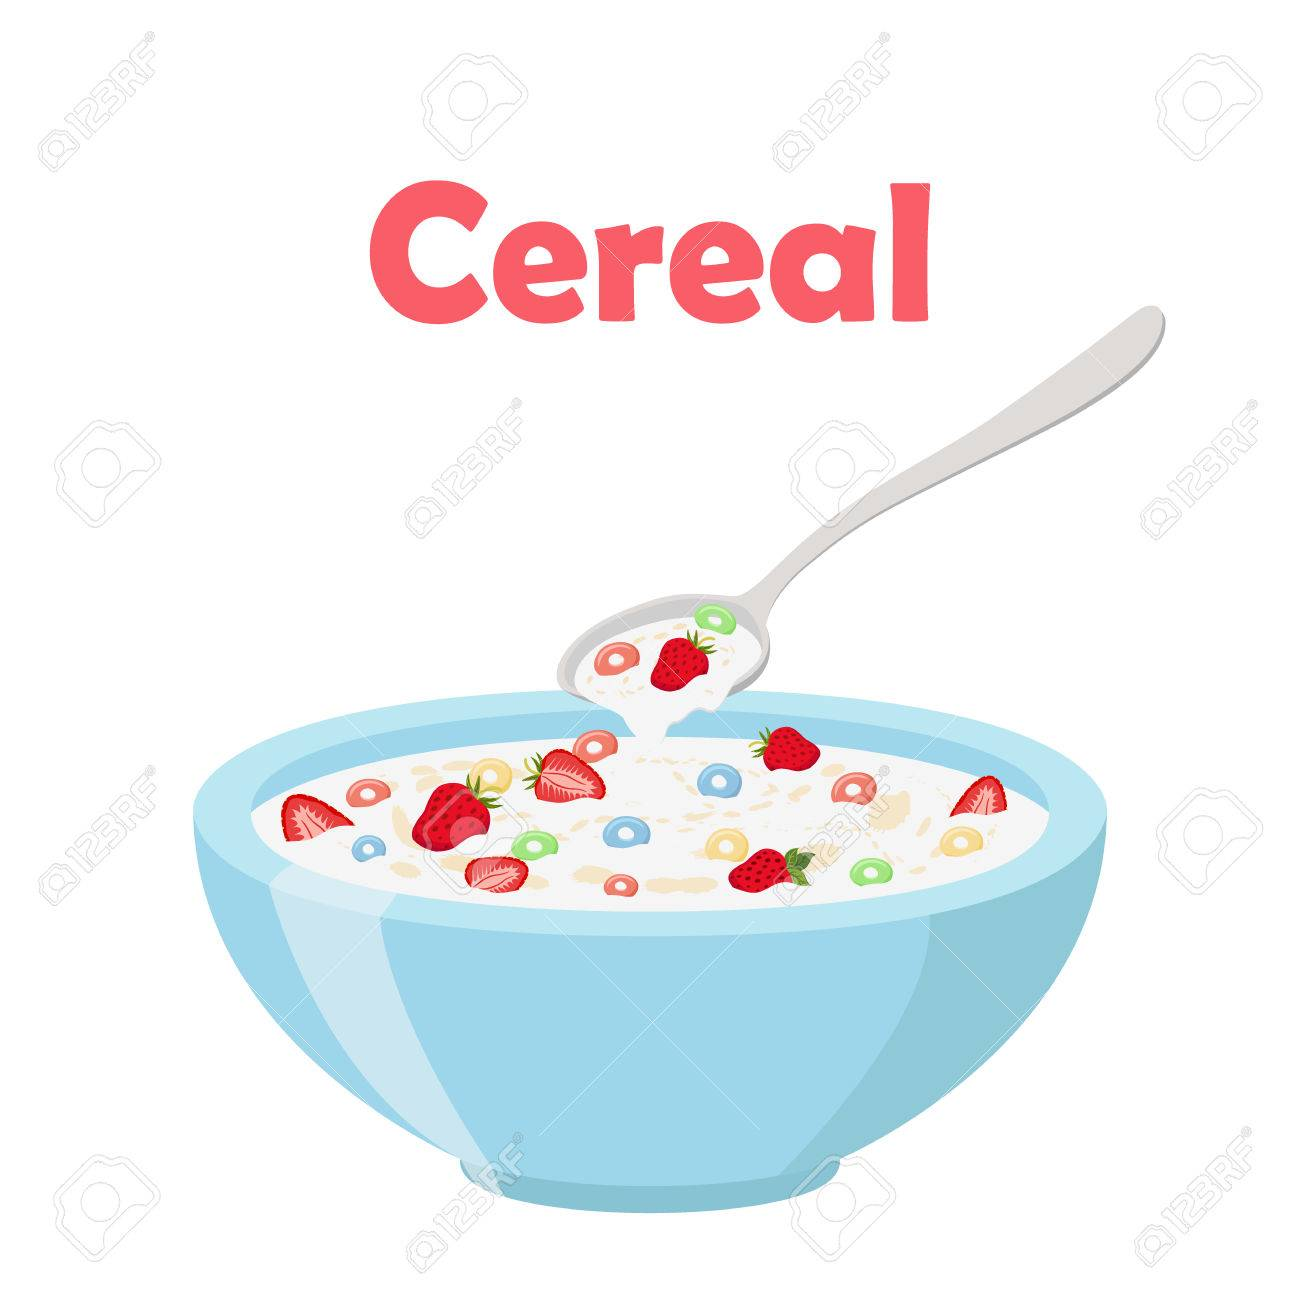 hight resolution of cereal rings strawberry spoon and bowl oatmeal breakfast with milk organic muesli